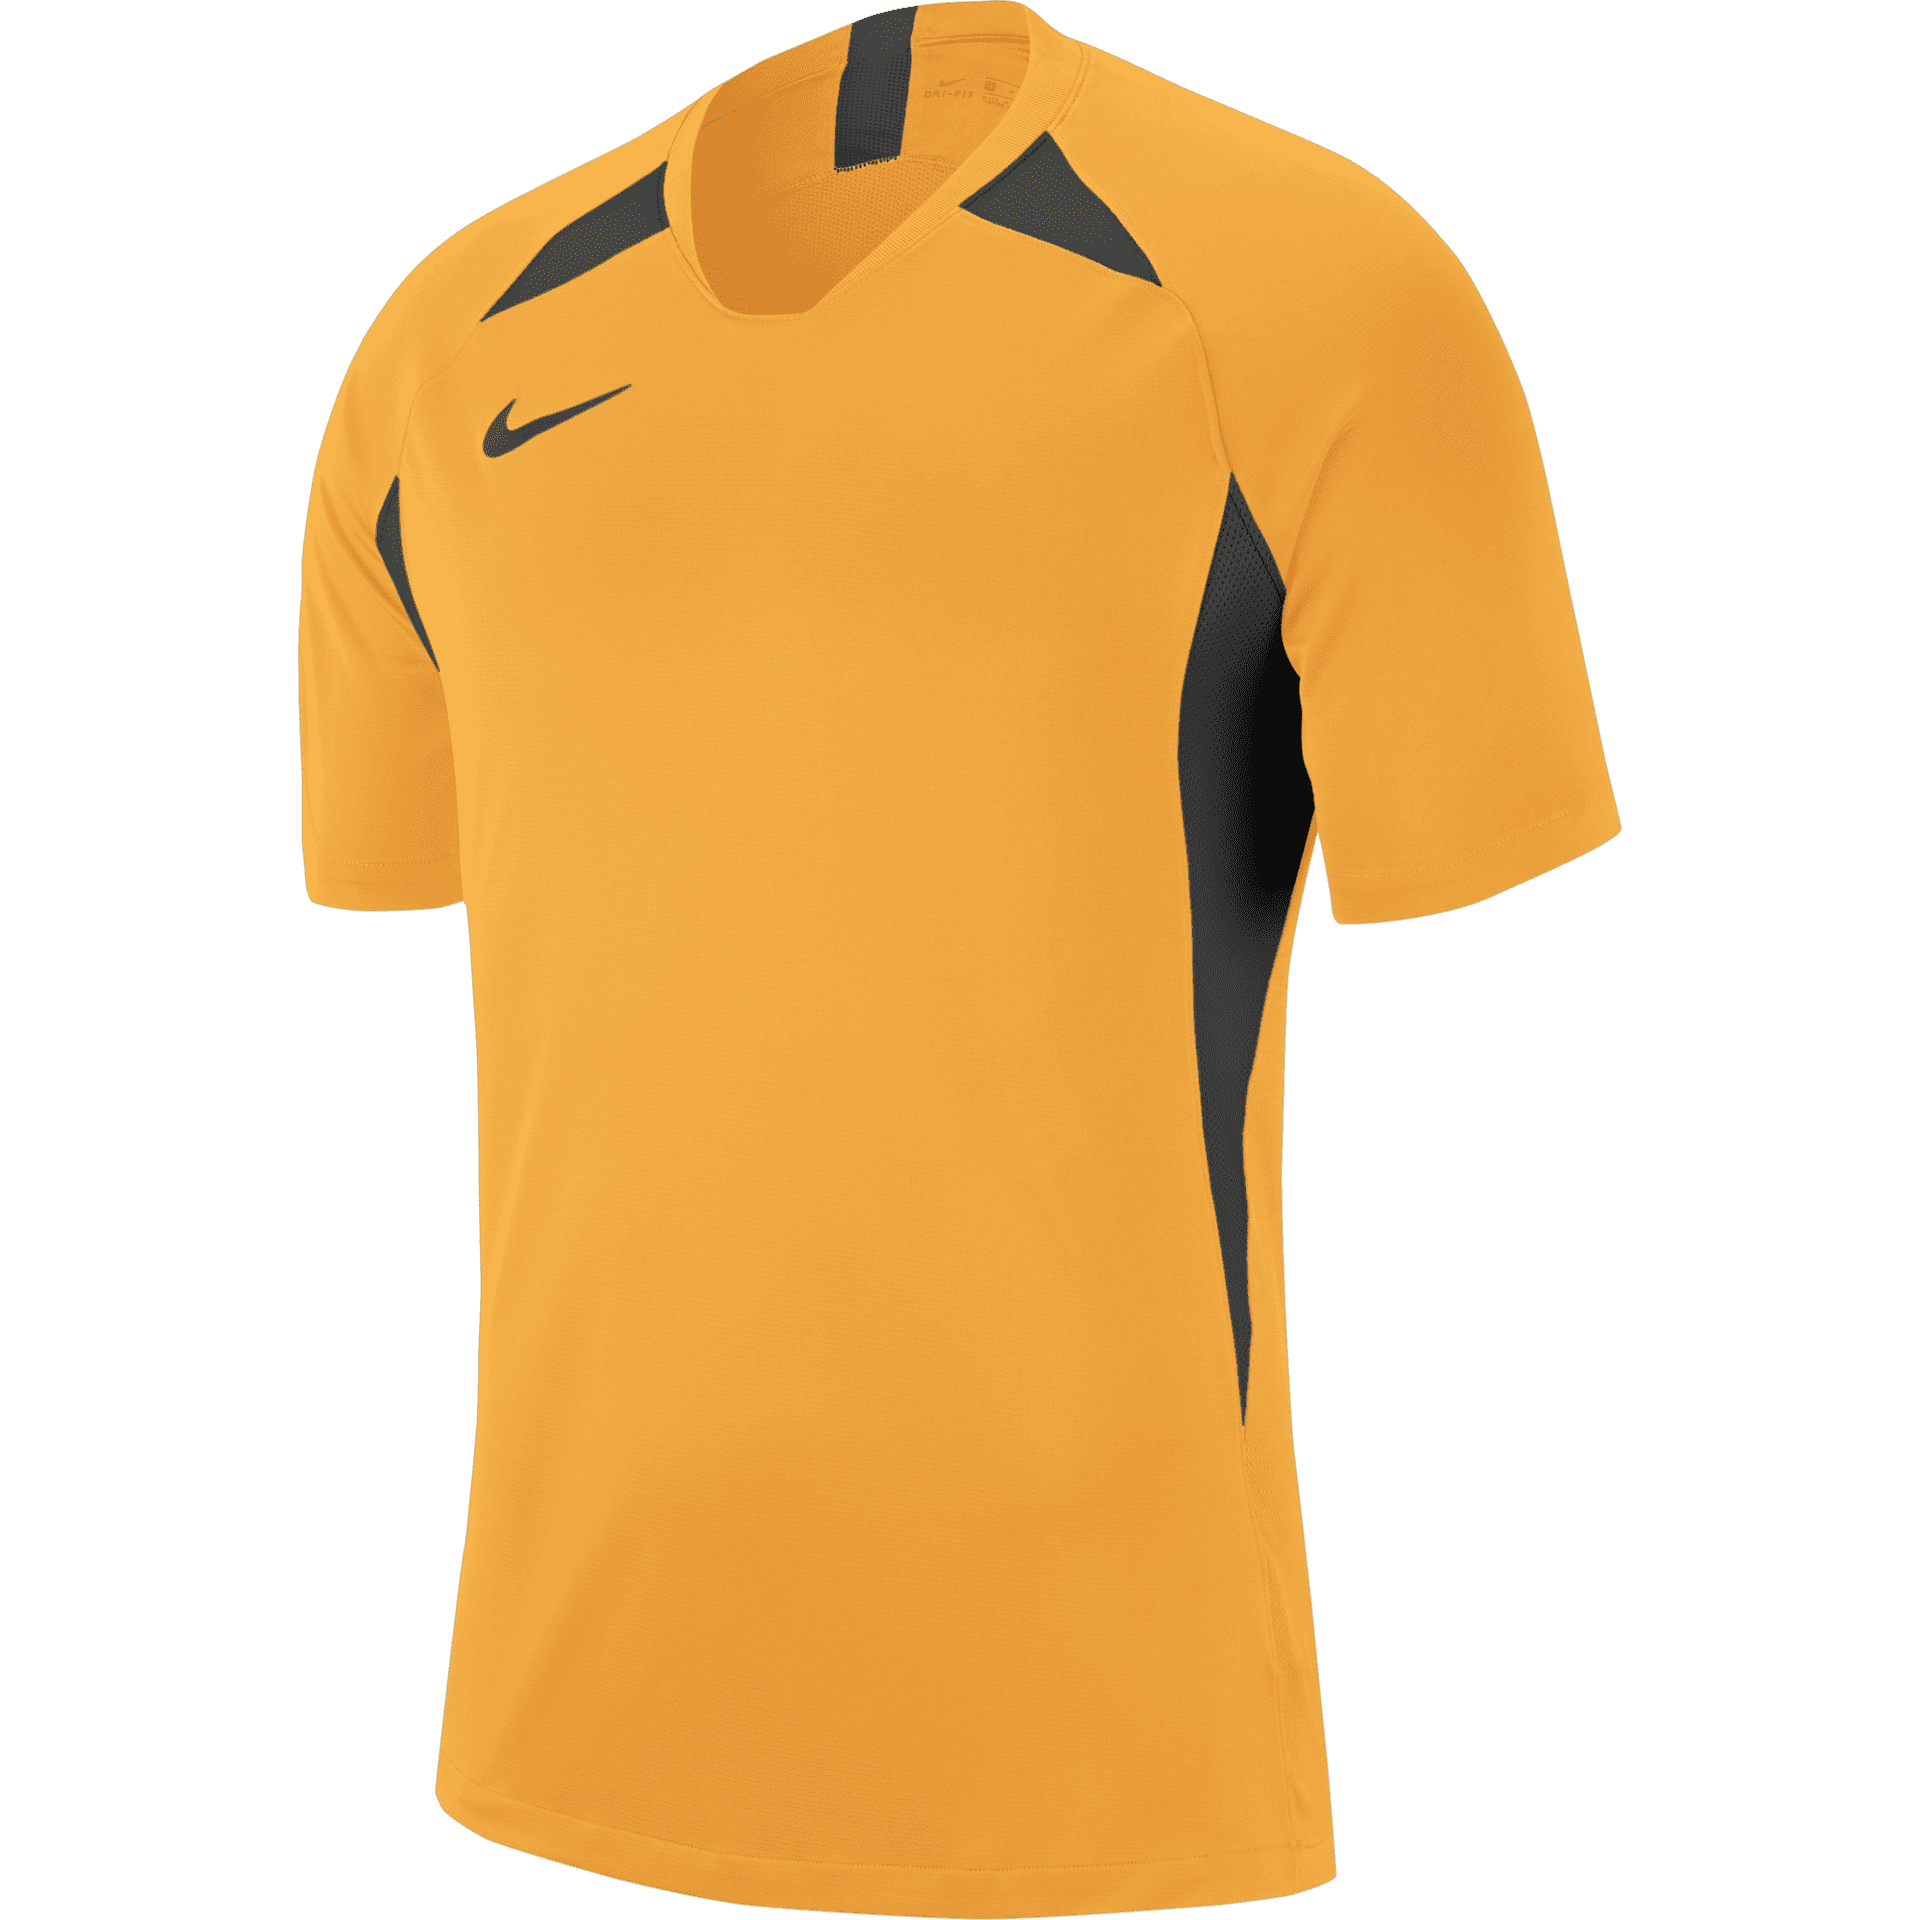 Nike Legend jersey (uni gold,black)